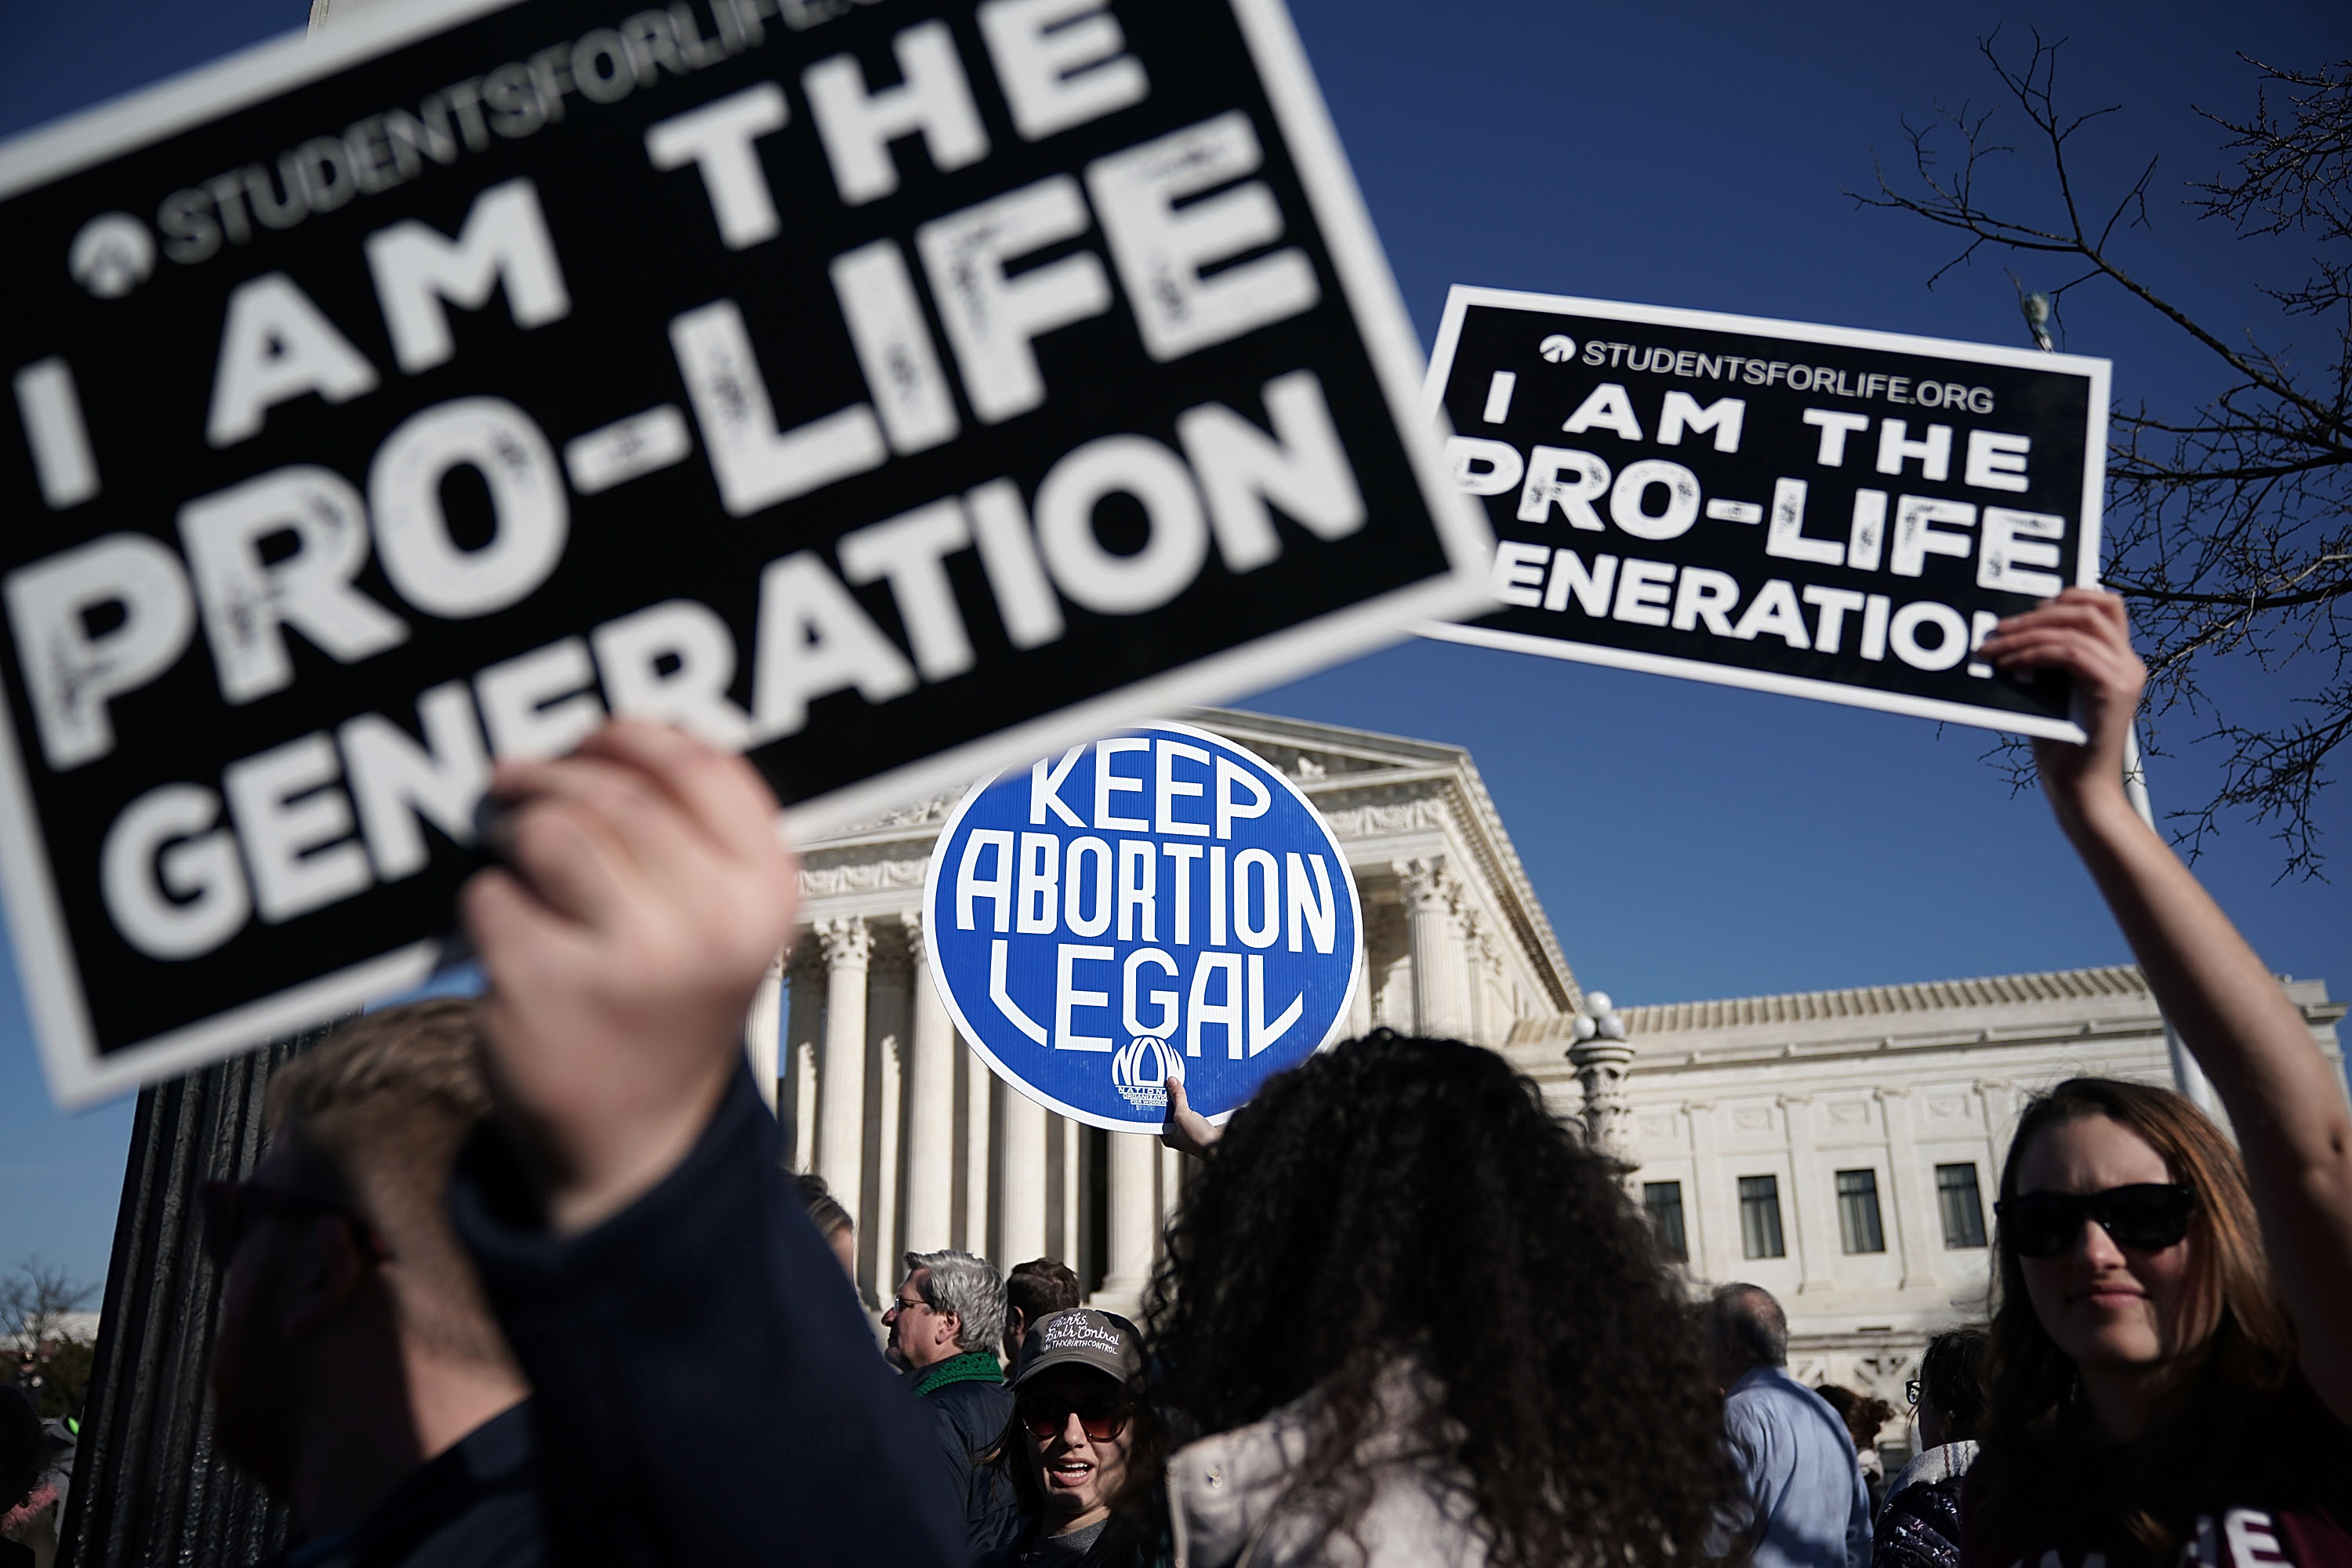 Pro-life activists try to block the sign of a pro-choice activist during the 2018 March for Life January 19, 2018 in Washington, DC. Activists gathered in the nation's capital for the annual event to protest the anniversary of the Supreme Court Roe v. Wade ruling that legalized abortion in 1973. (Getty Images)